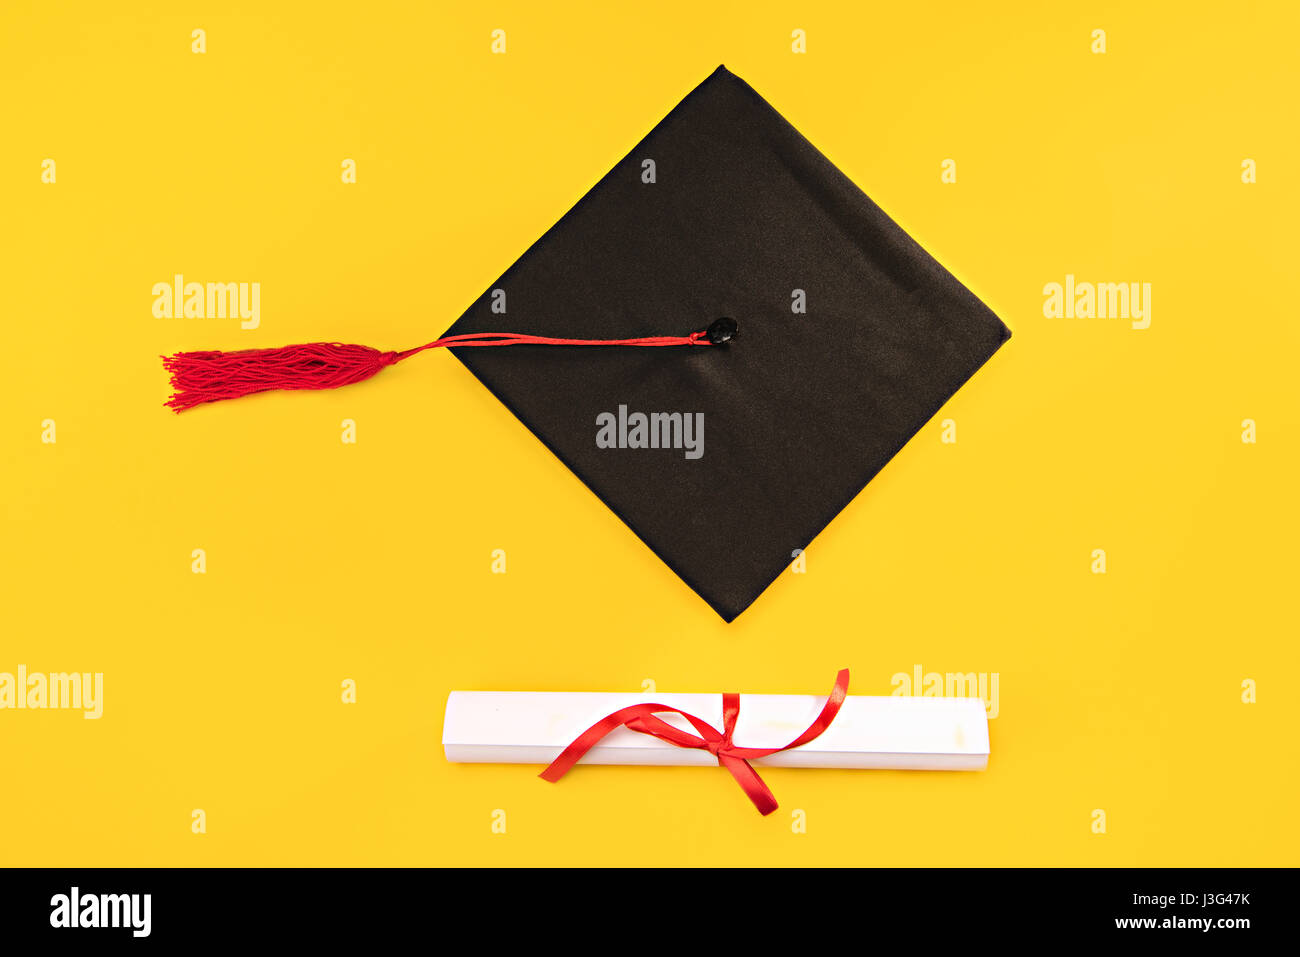 Top view of graduation mortarboard and diploma on yellow background, education concept - Stock Image